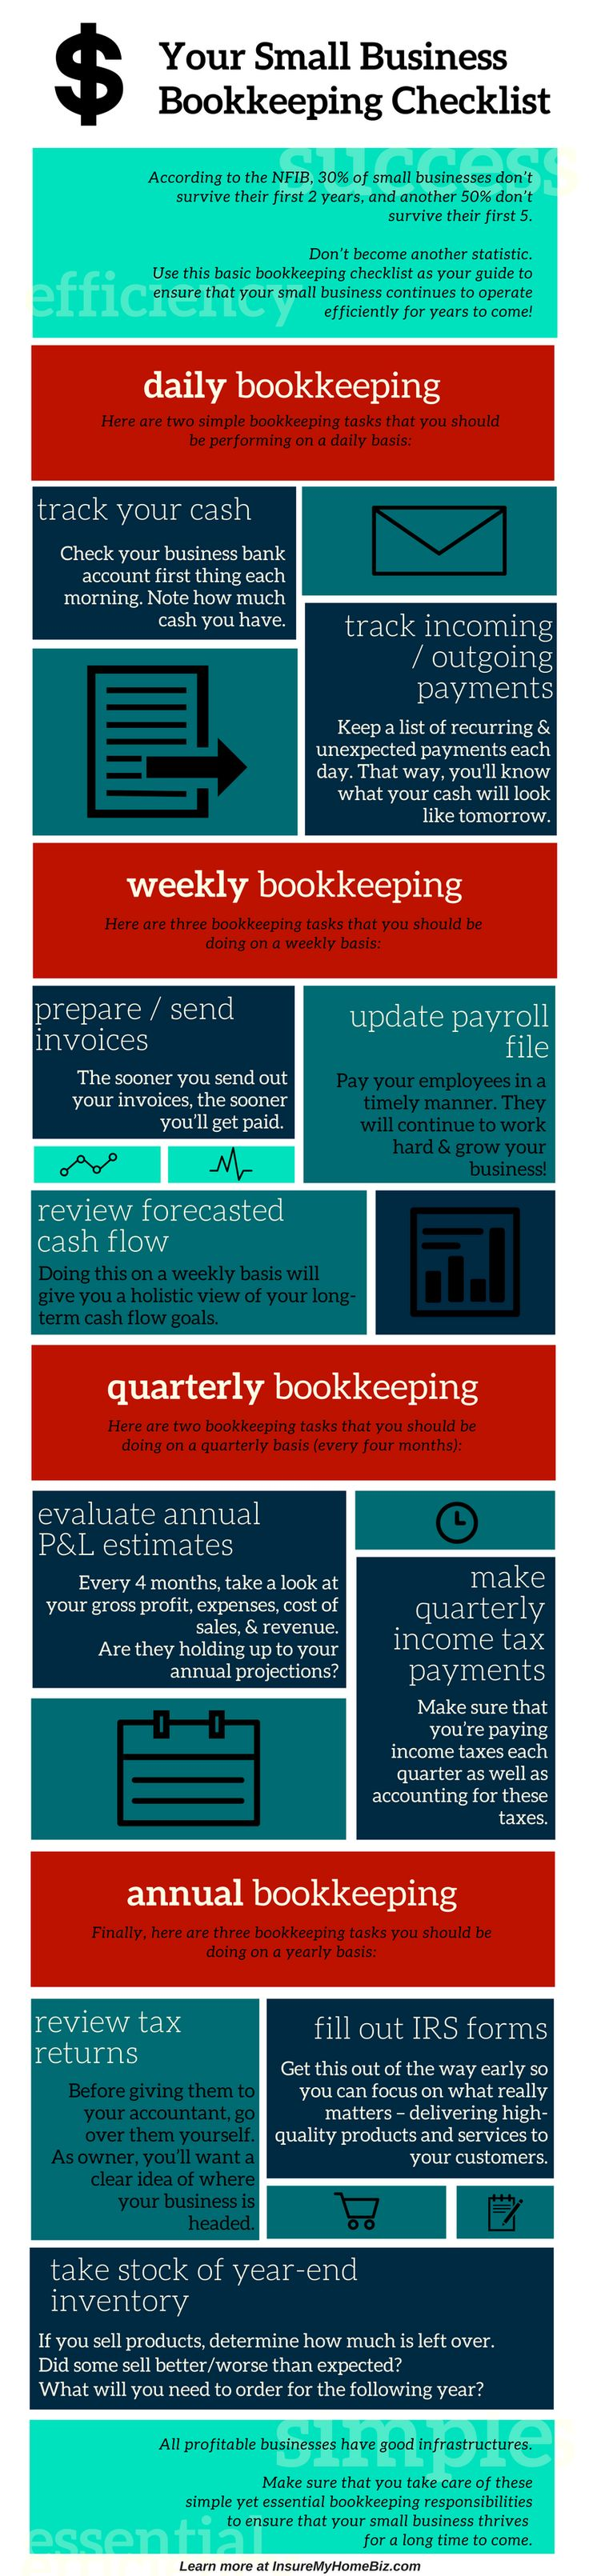 small business bookkeeping checklist infographic